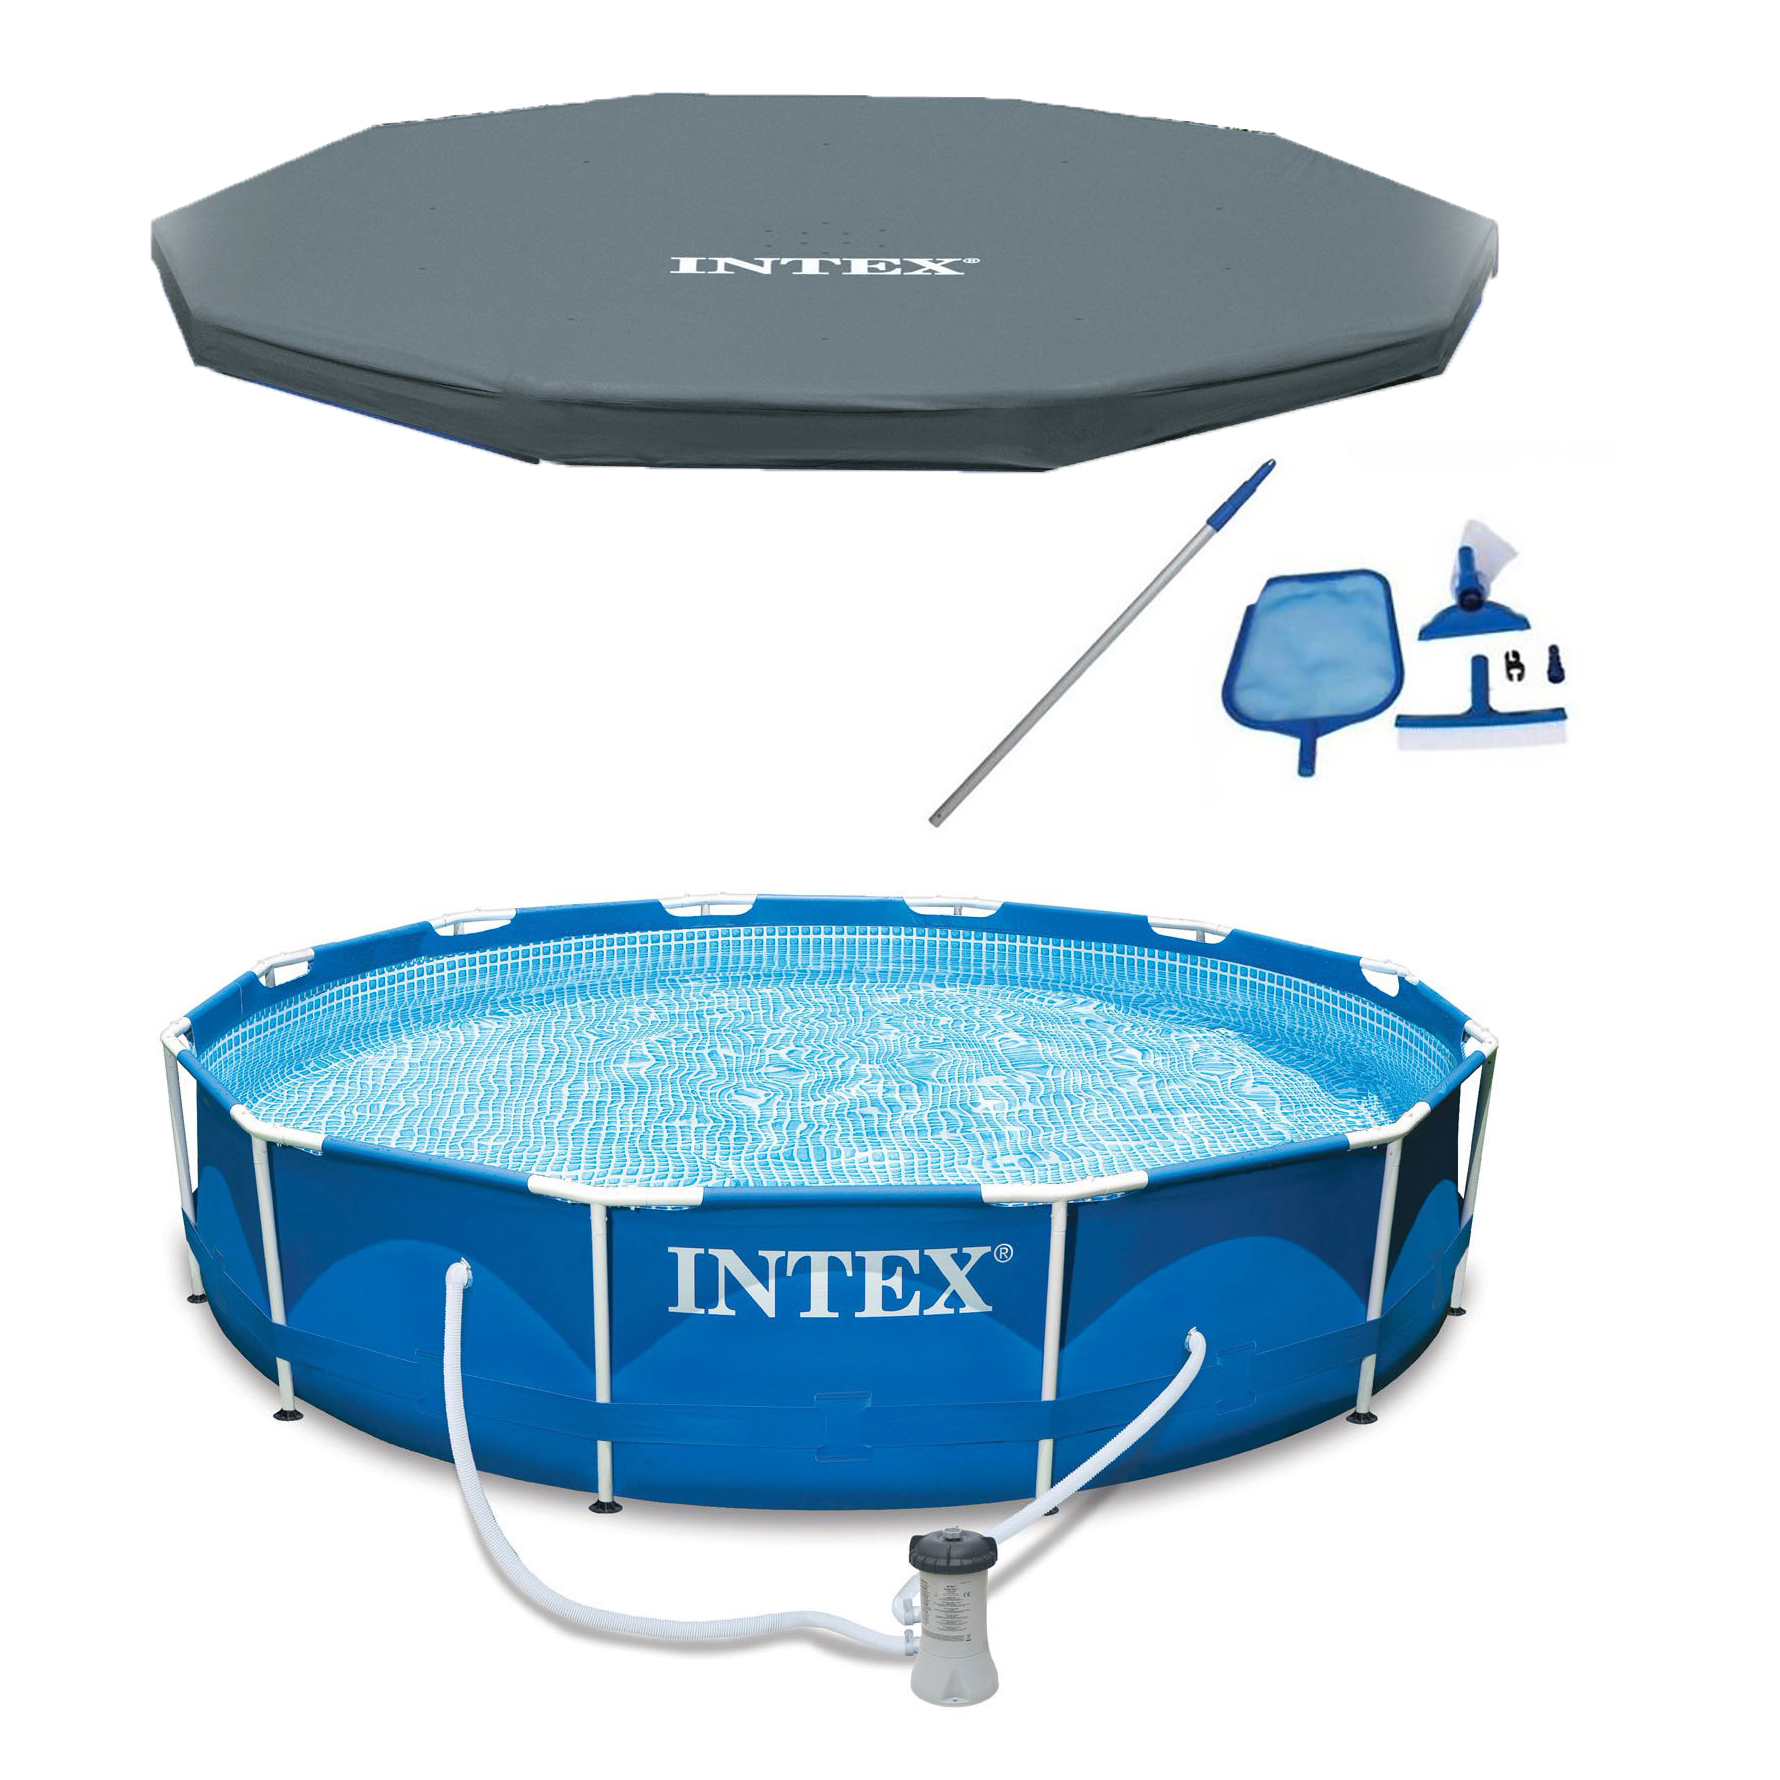 "Intex 12' x 30"" Metal Frame Above Ground Pool, Filter, Cover, & Maintenance Kit"